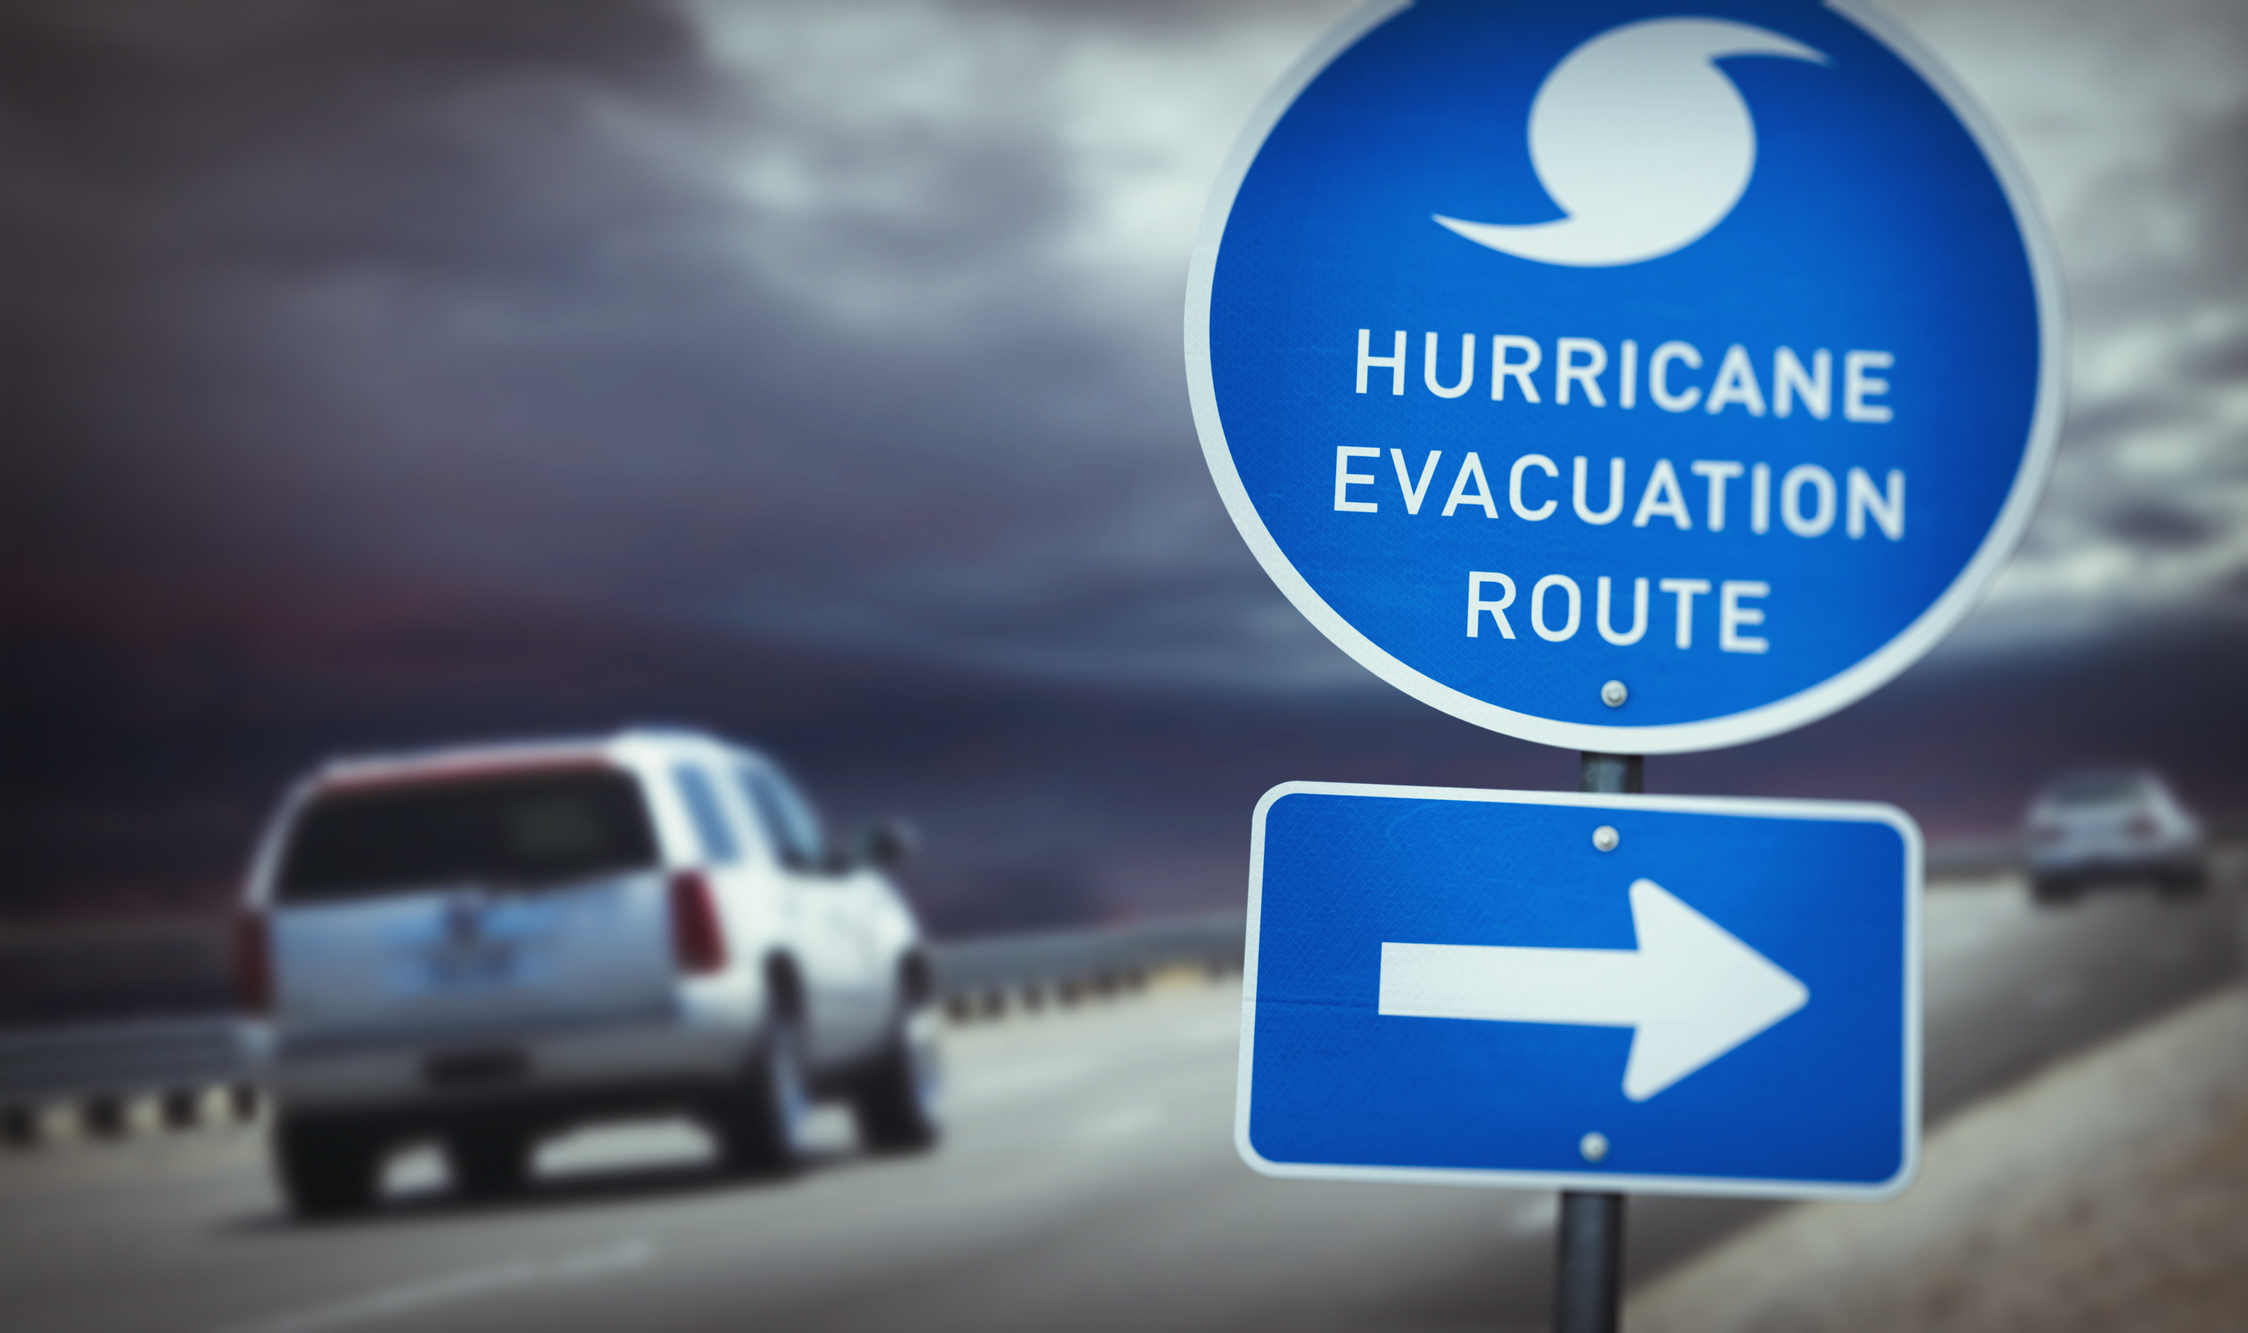 cars on hurricane evacuation route in florida